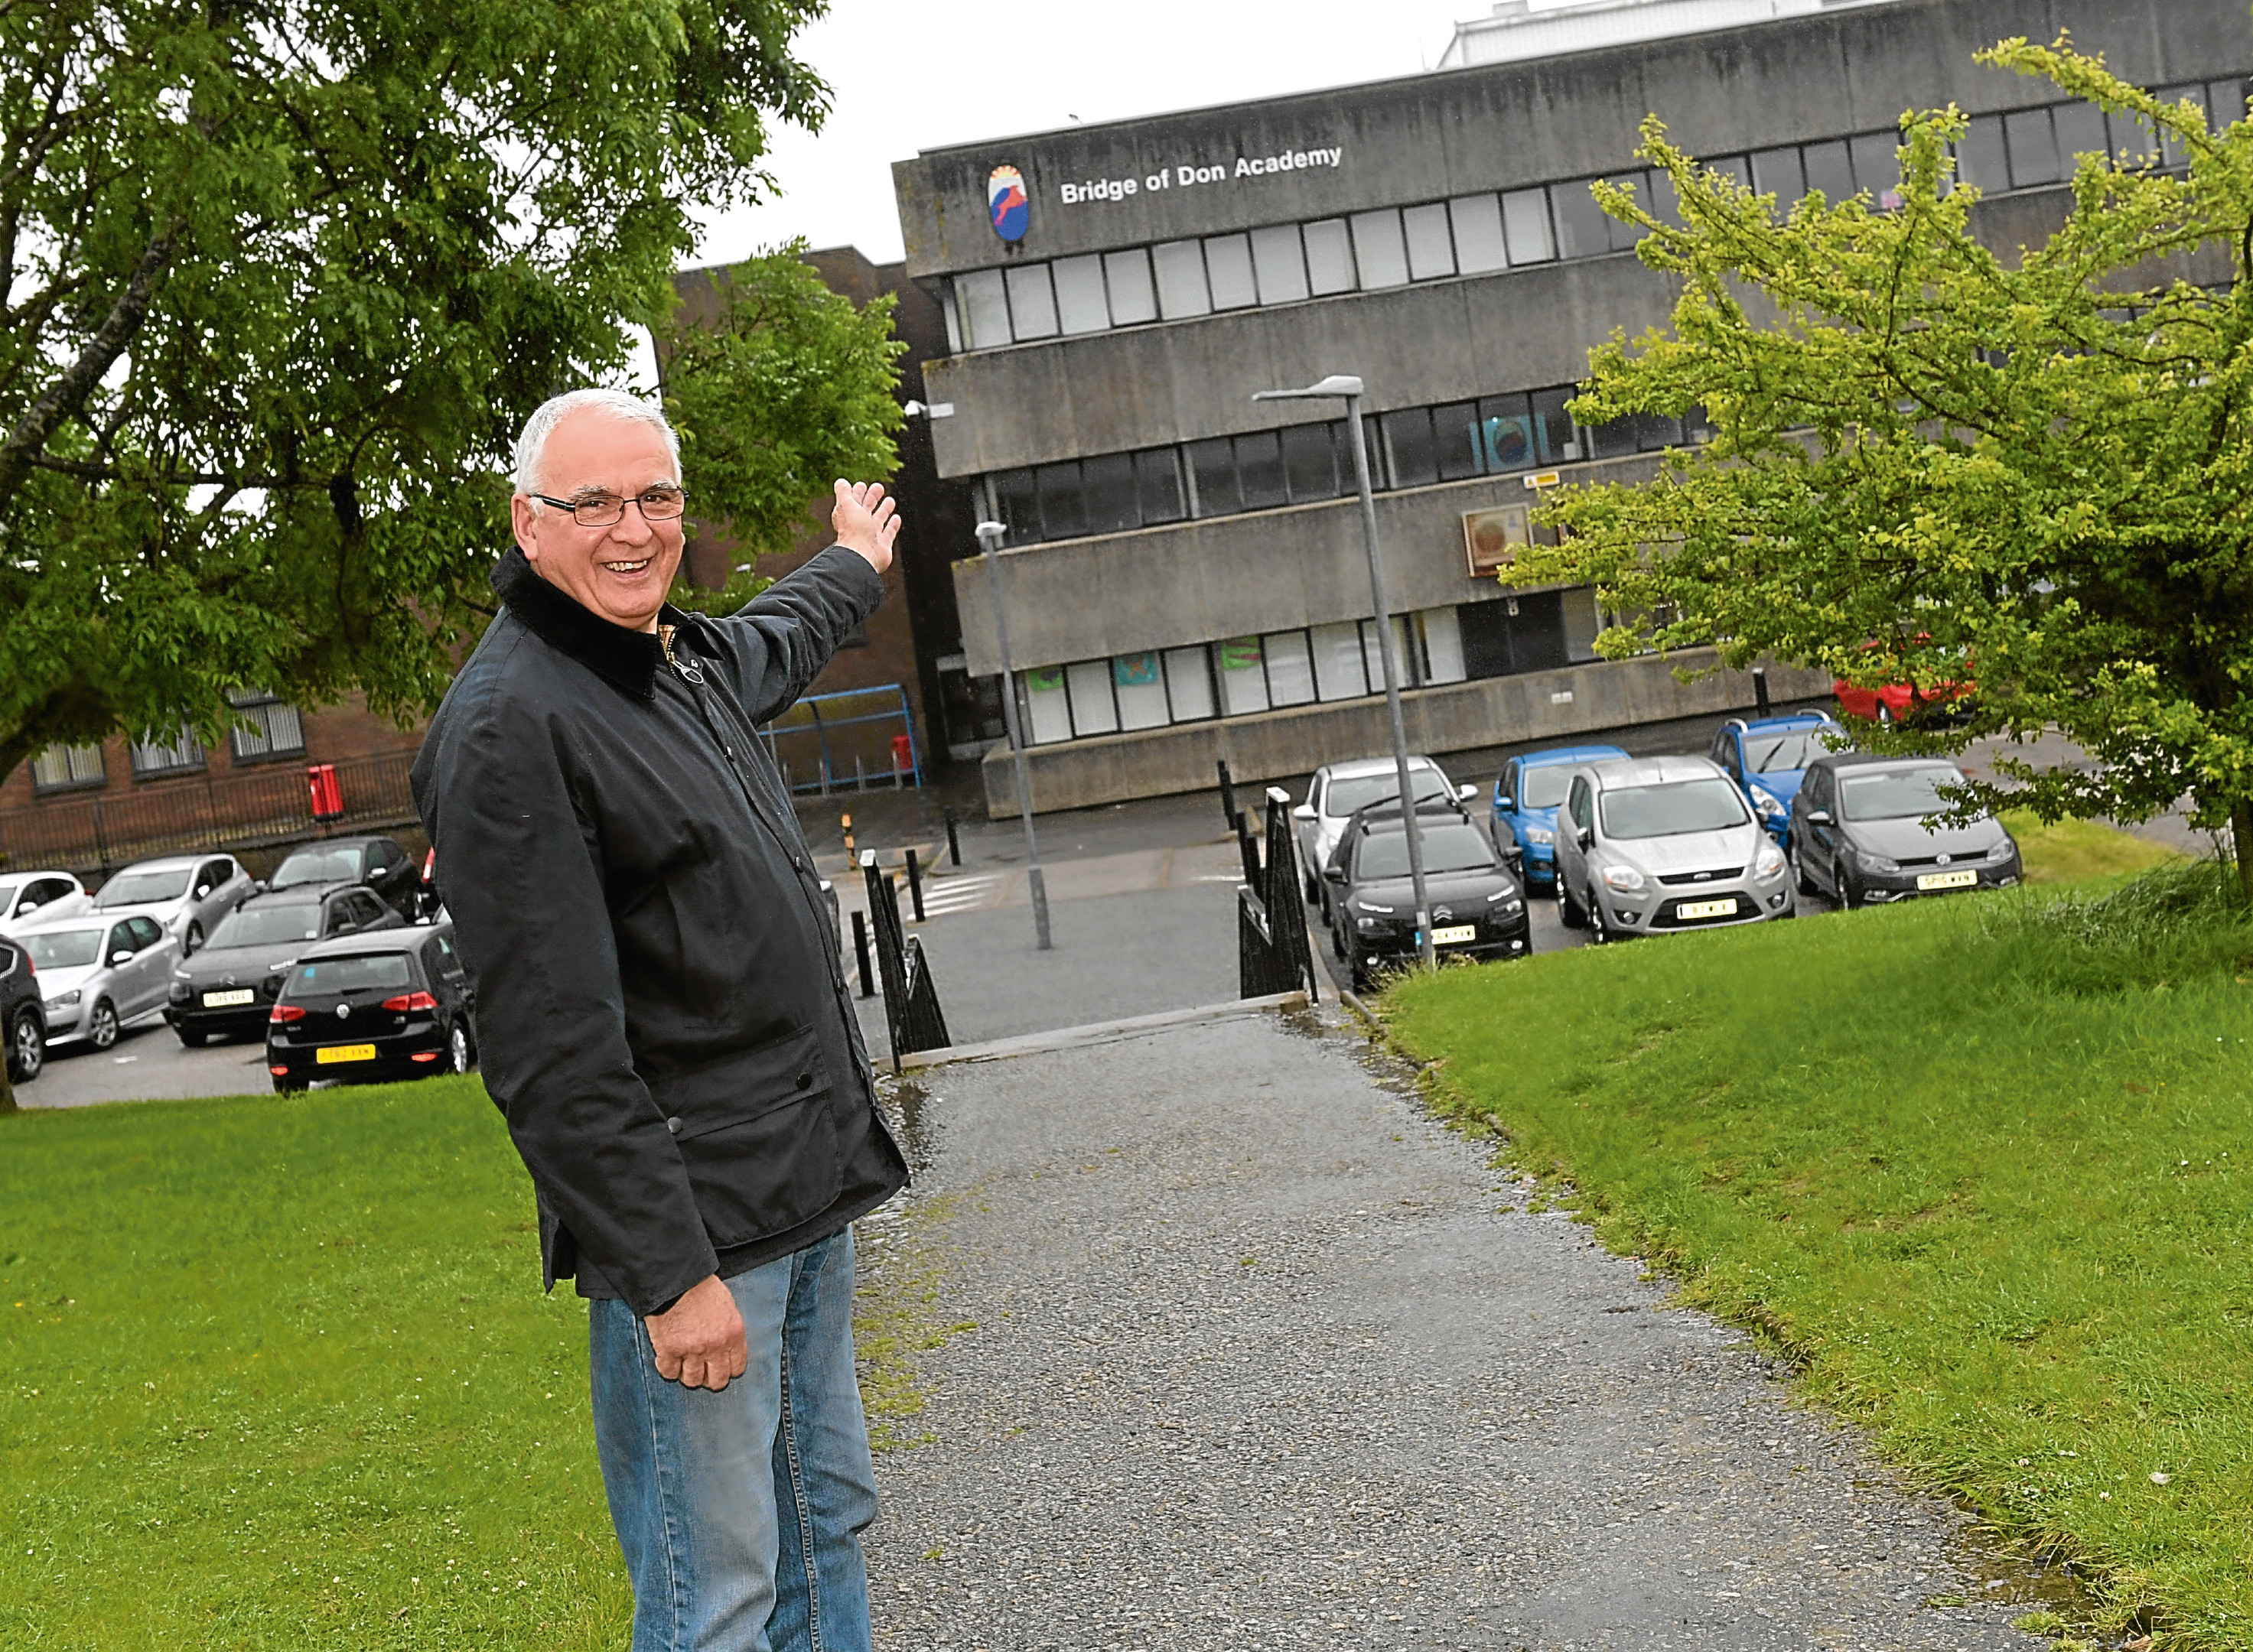 David Chesser has retired after working for 38 years as a janitor at Bridge of Don Academy.